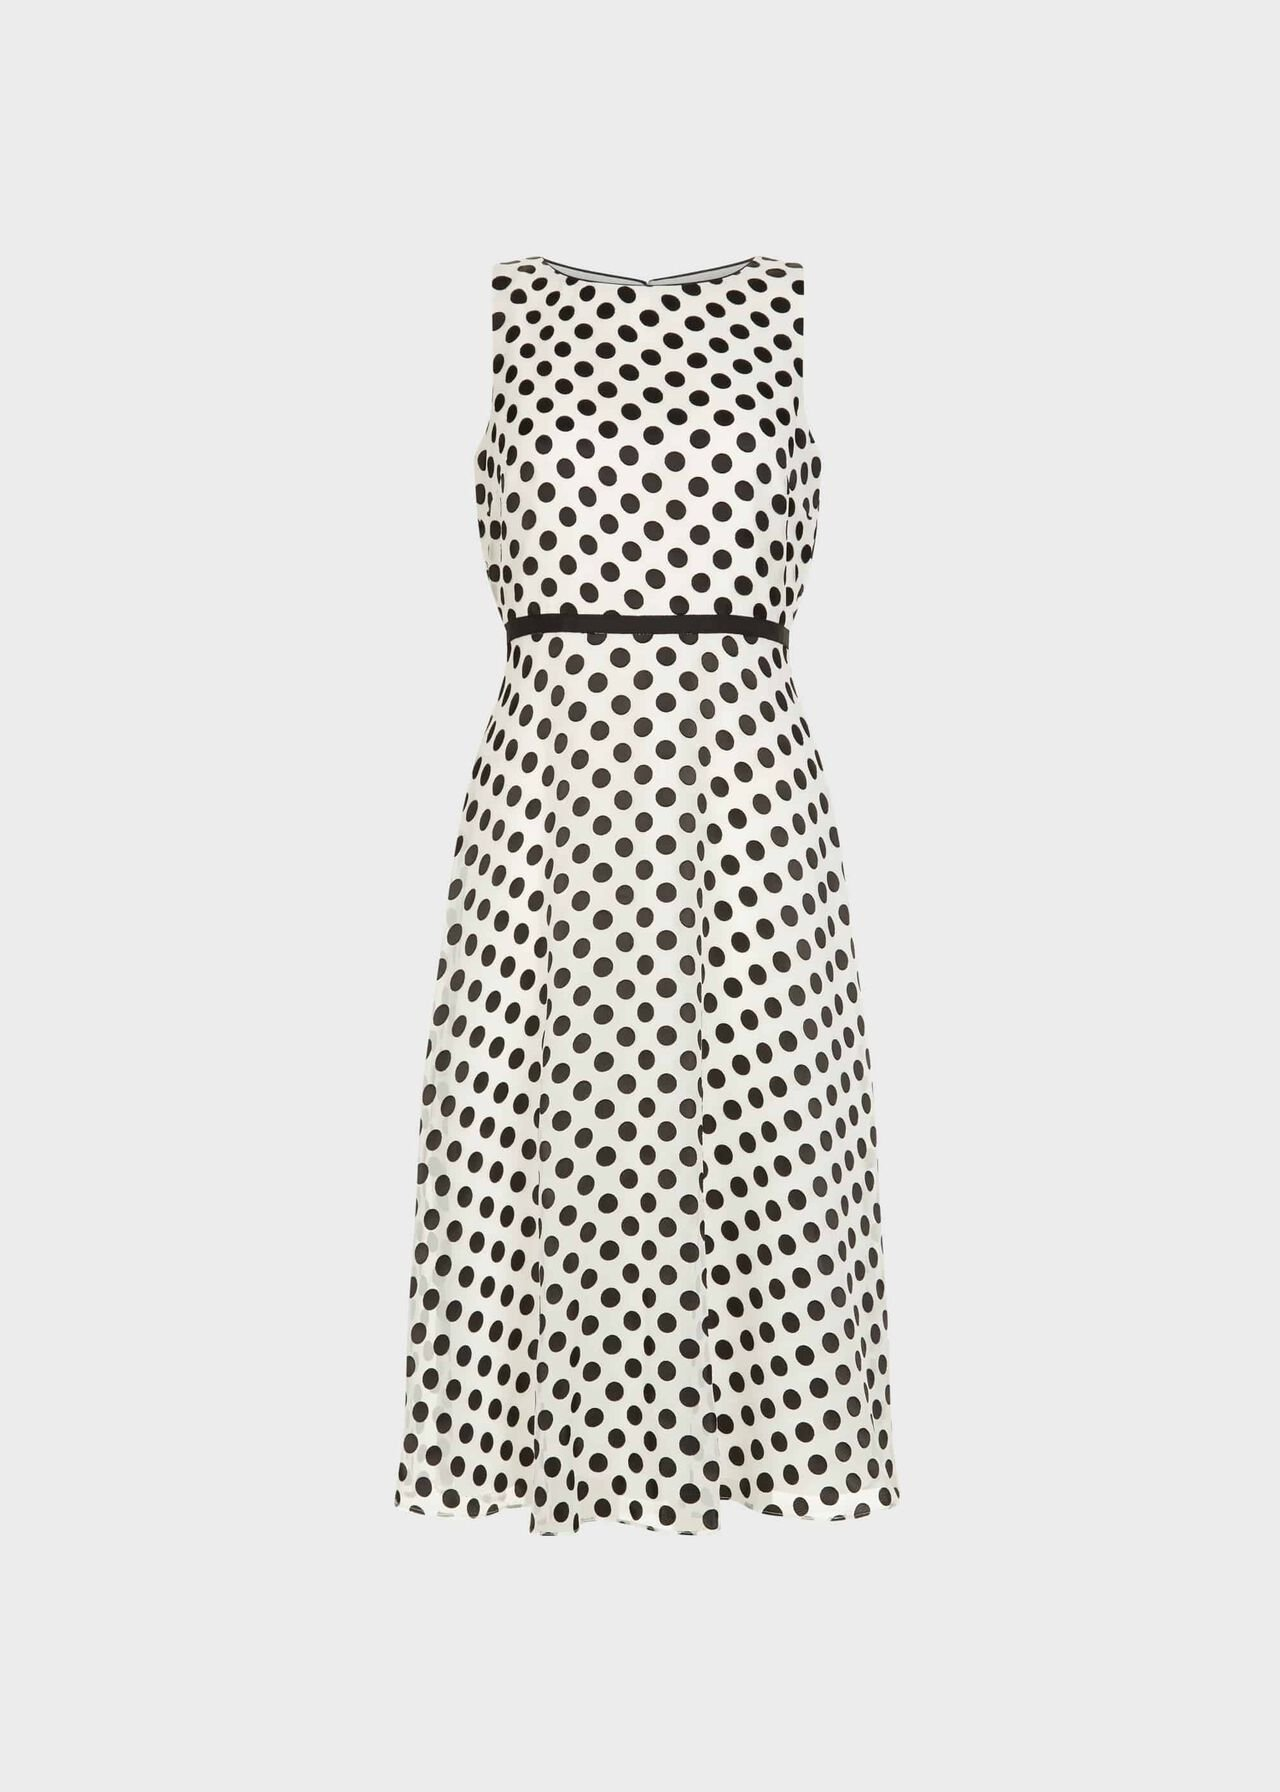 Adeline Jacquard Spot Dress Ivory Black